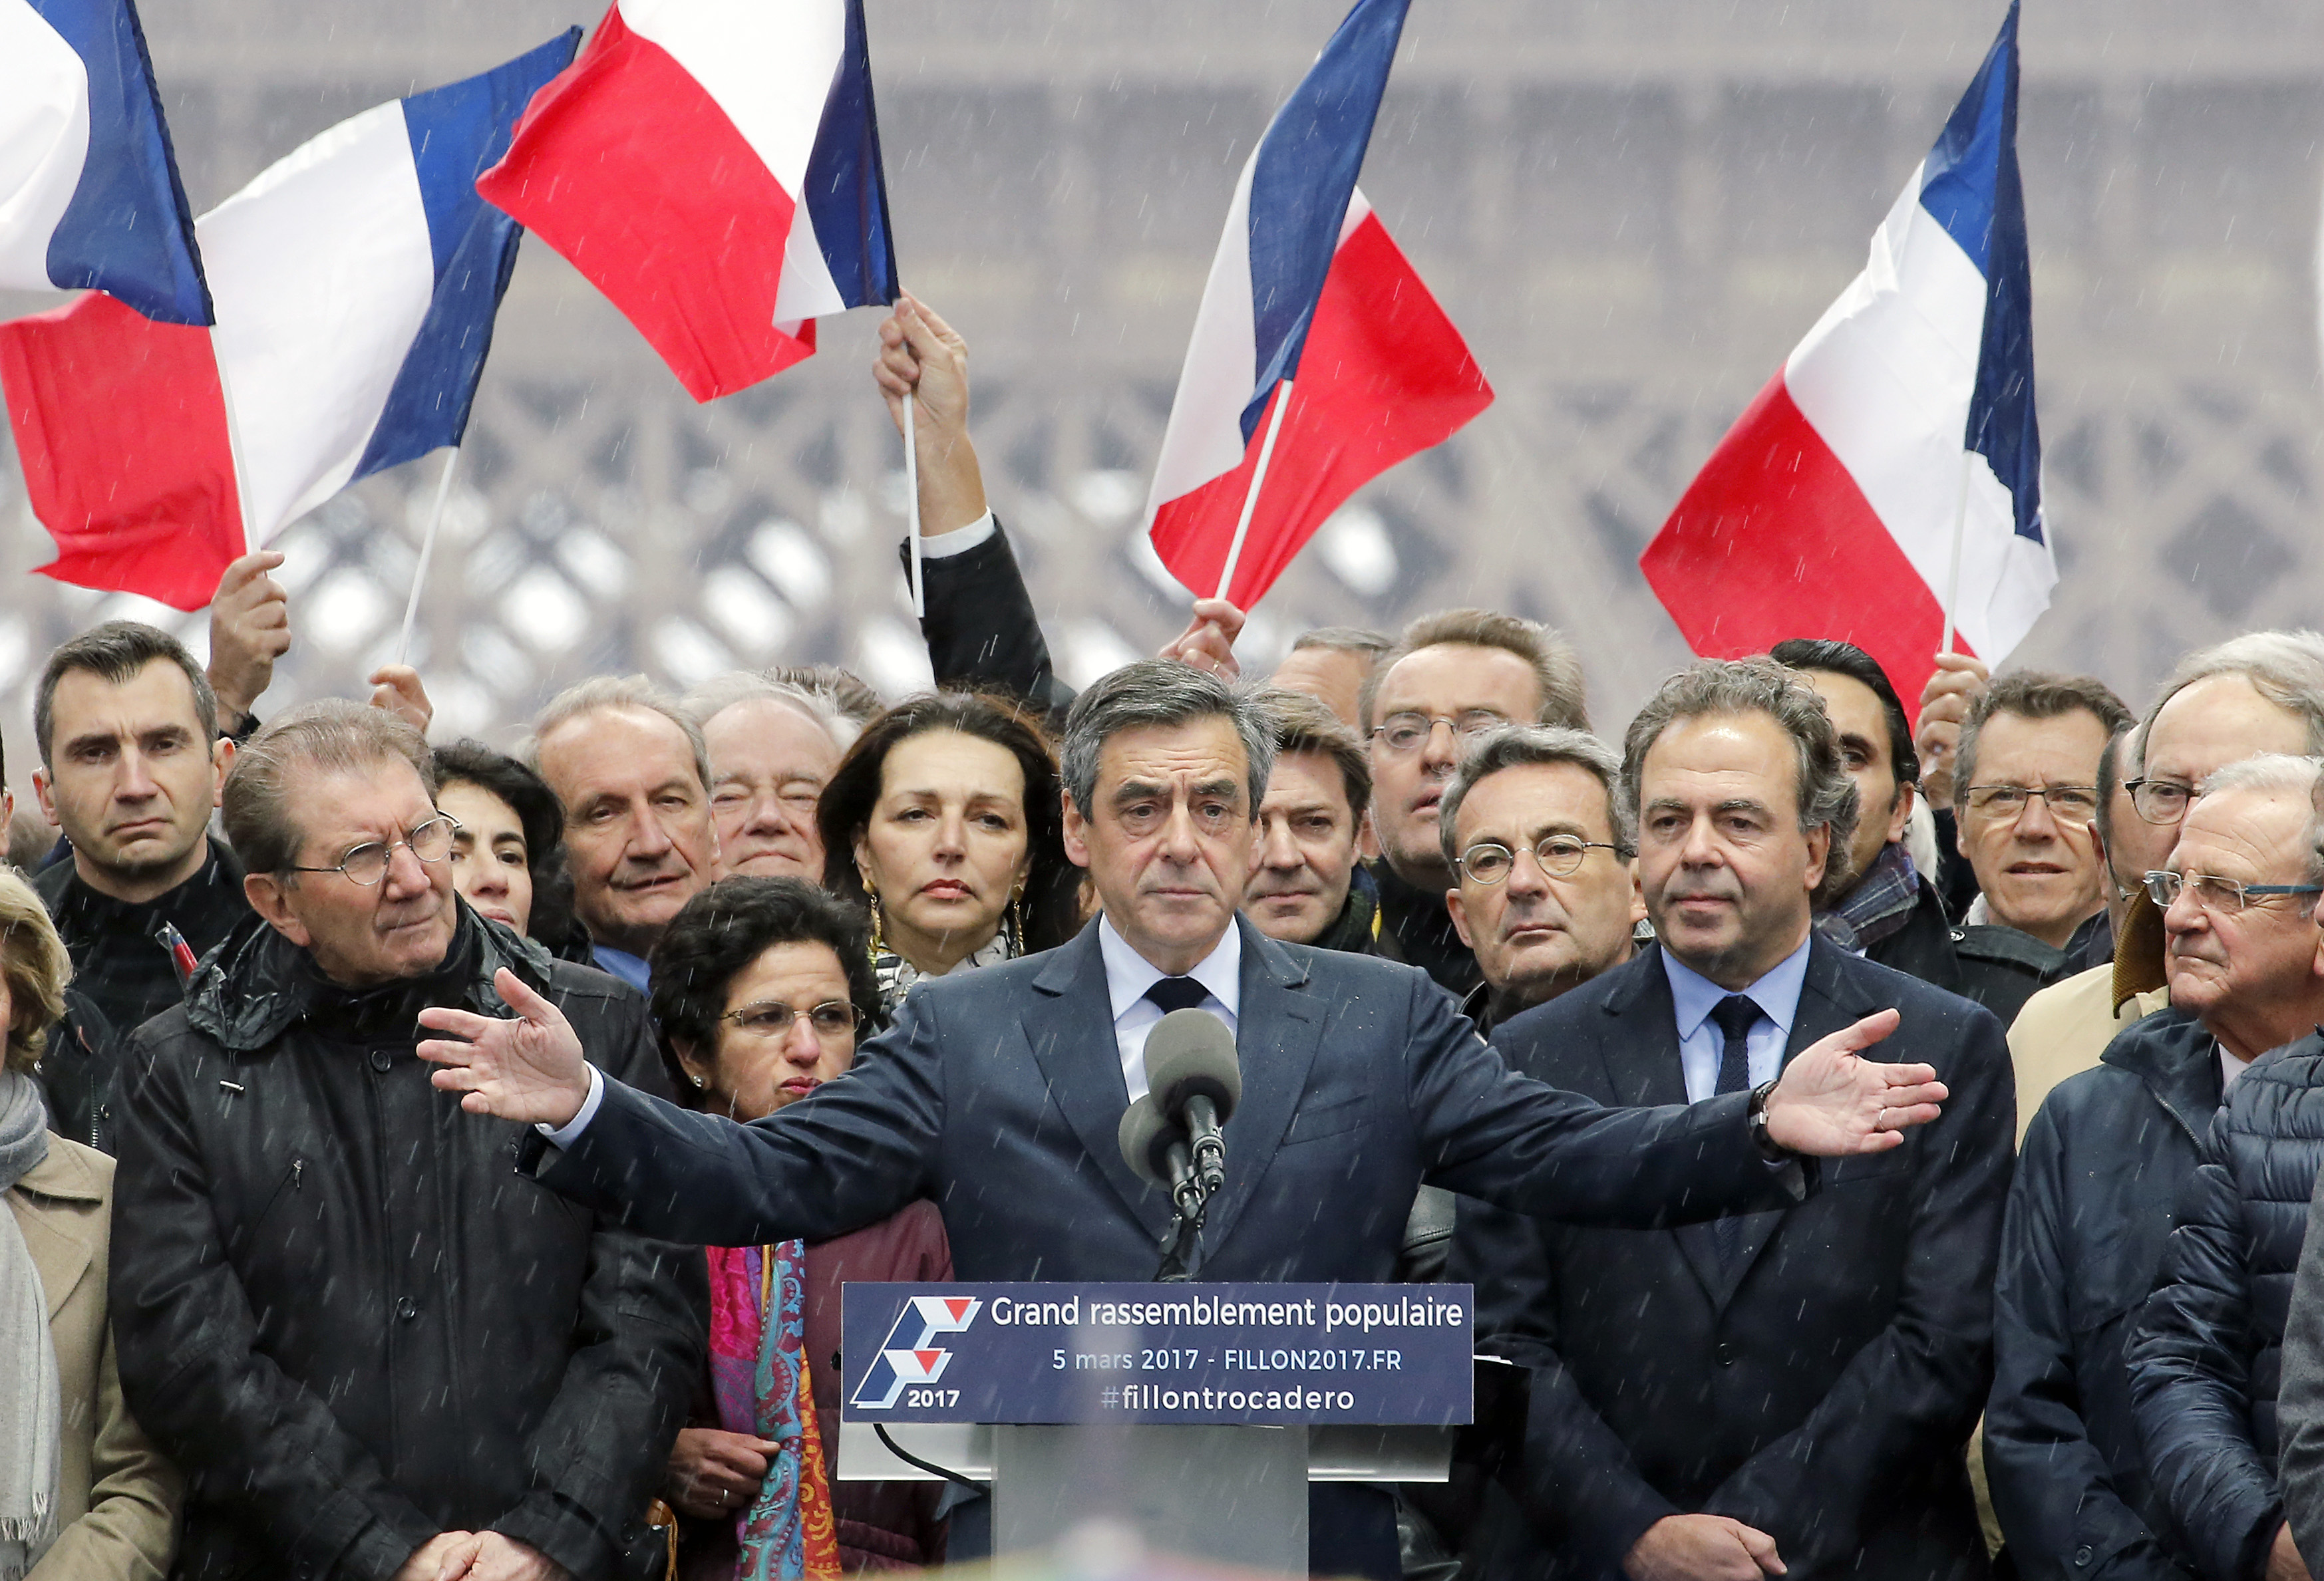 French presidential candidate Francois Fillon delivers a speech during a campaign rally on March 5, 2017, in Paris, France.